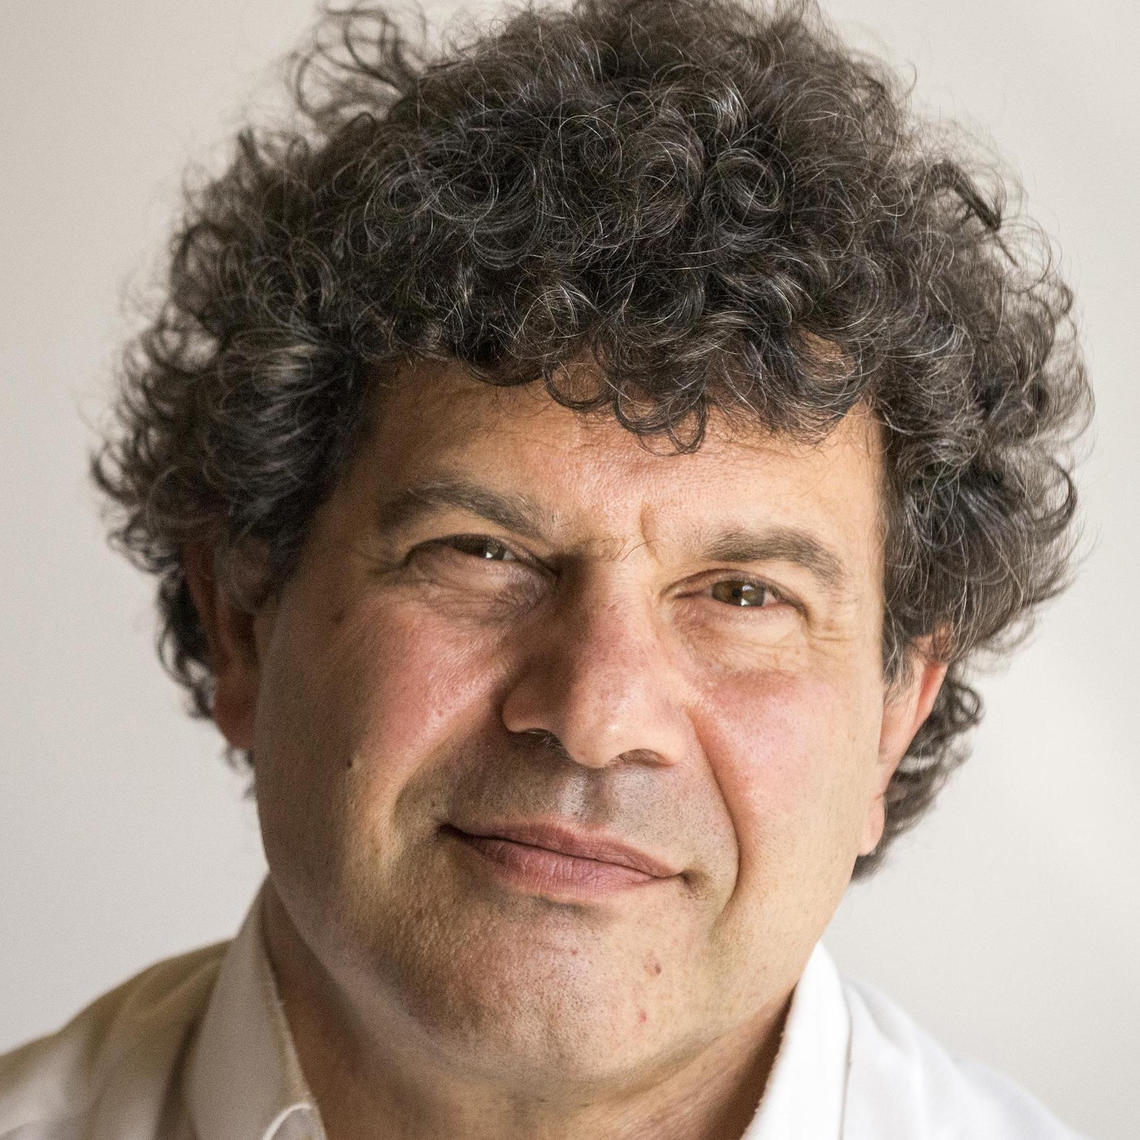 one of this year's guest speakers, Steven Sloman, a cognitive scientist from Brown University